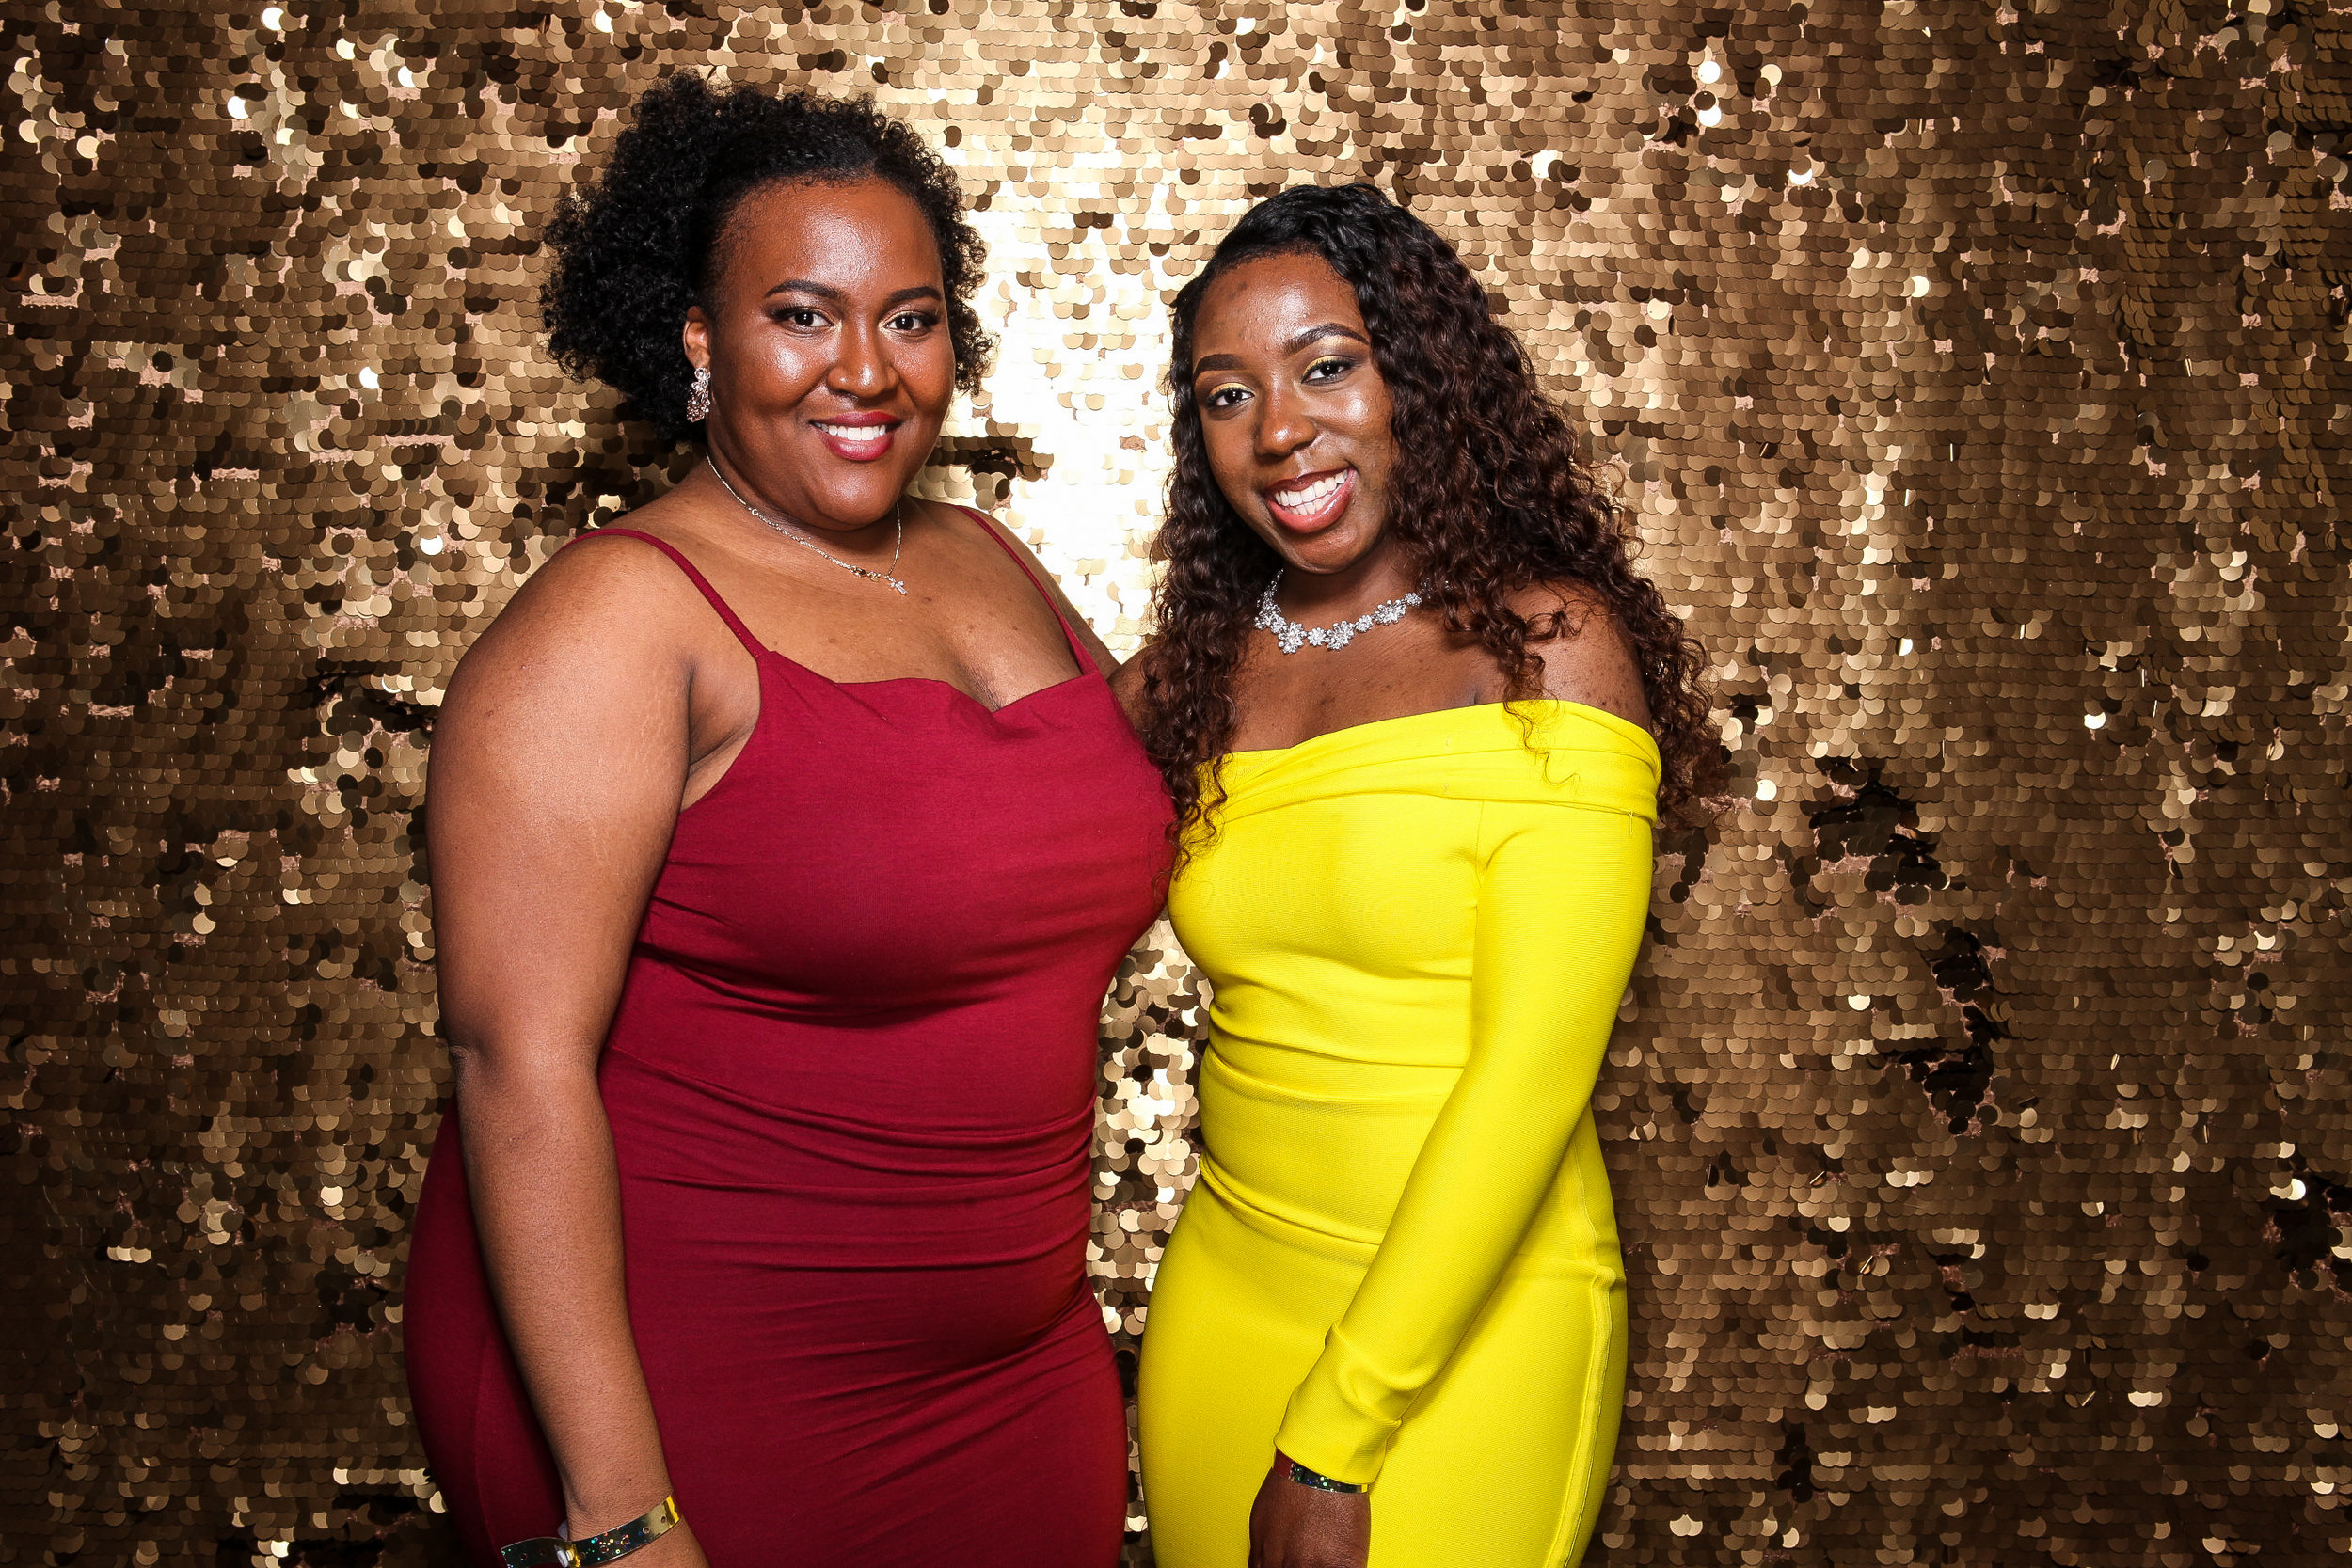 20190503_Adelphi_Senior_Formal-364.jpg